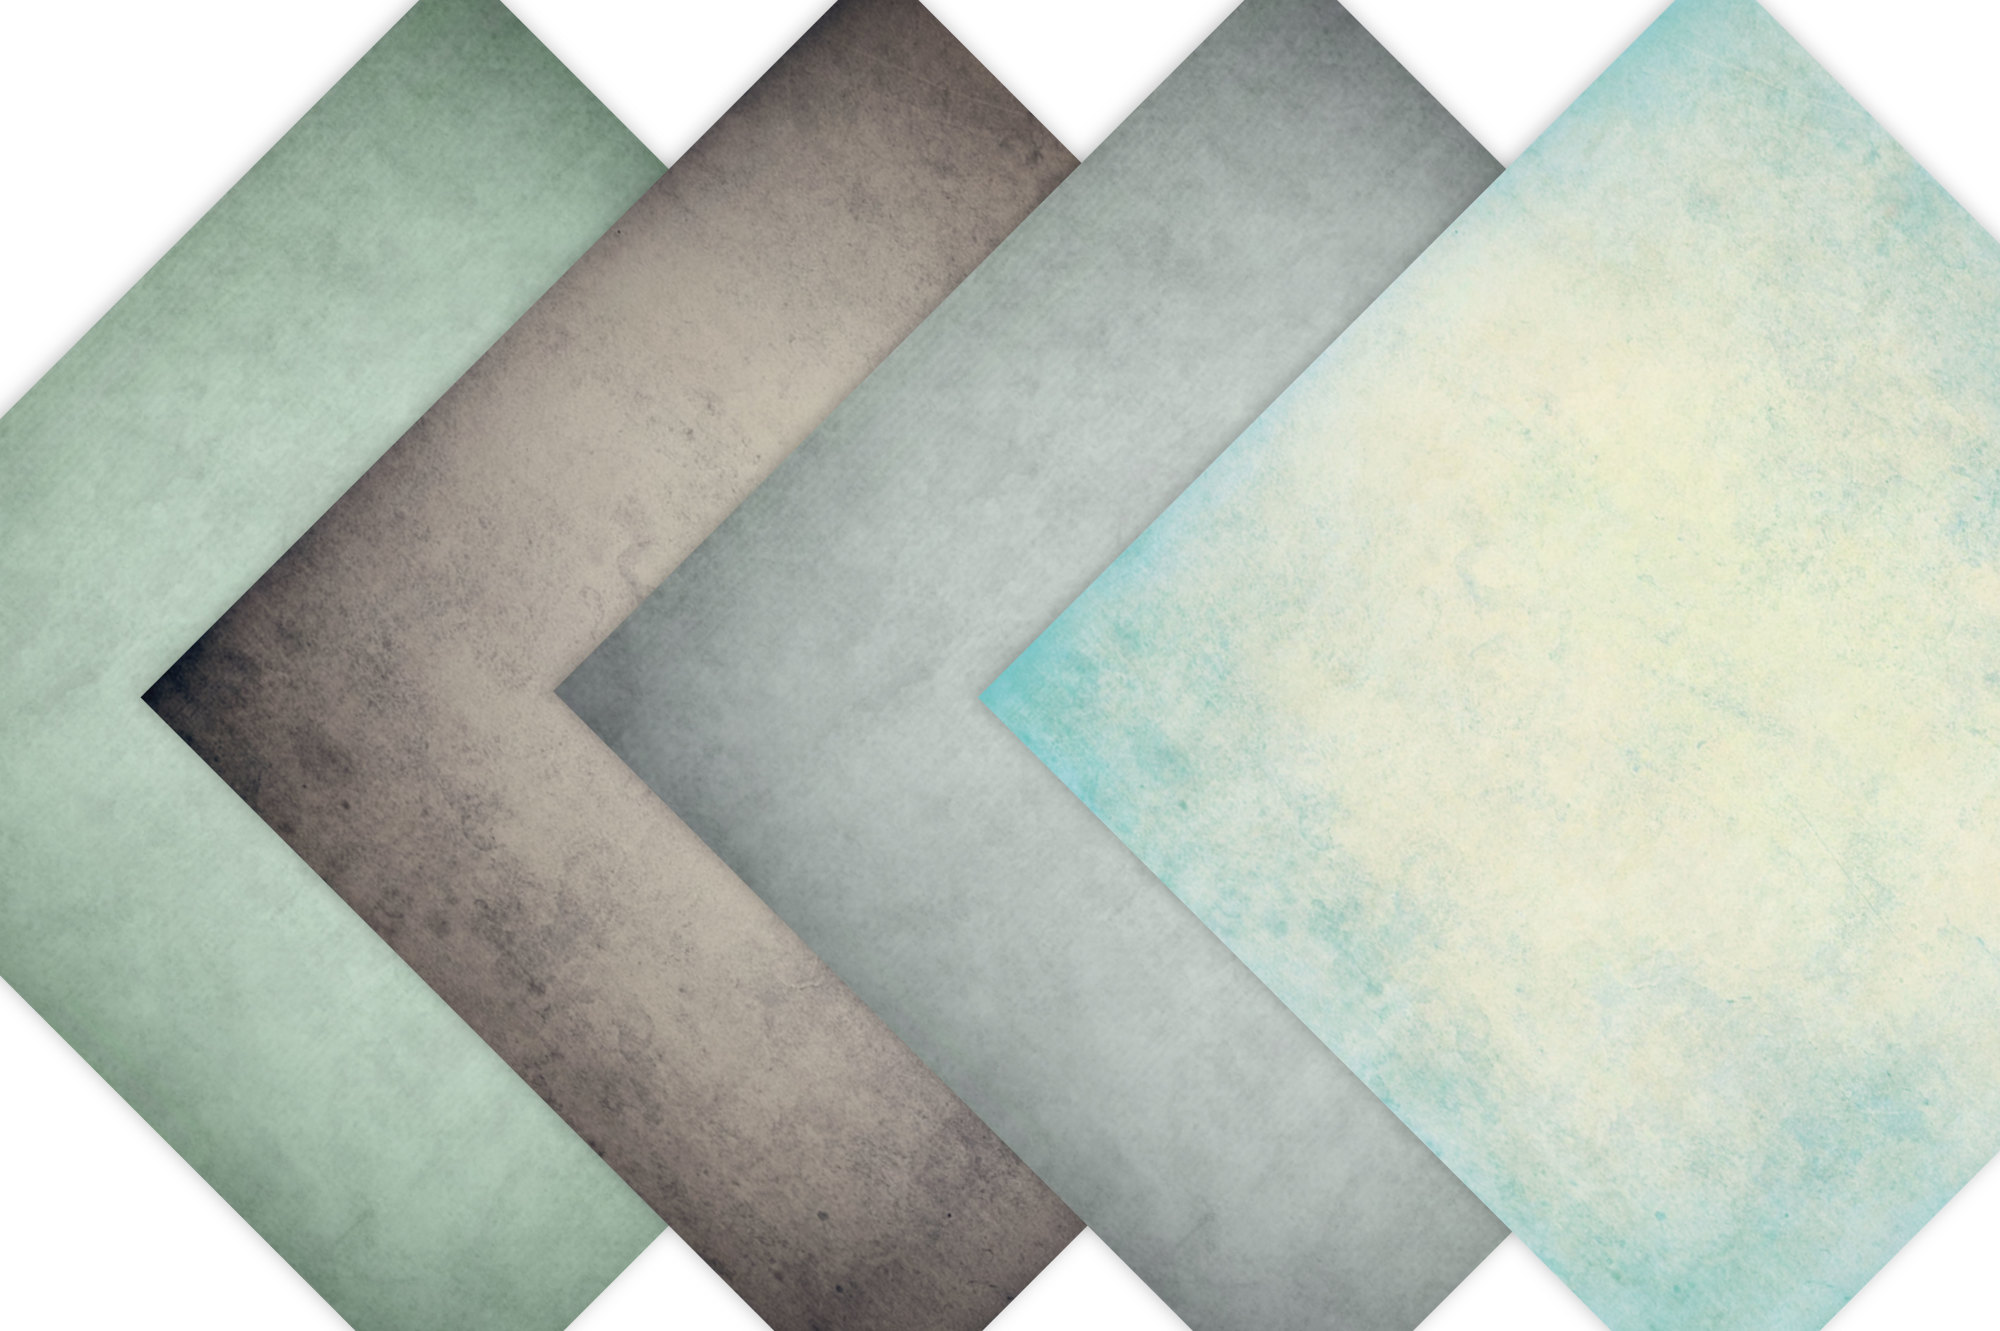 Vintage Paper Backgrounds - Textured Backgrounds in Shabby Chic Colors example image 2